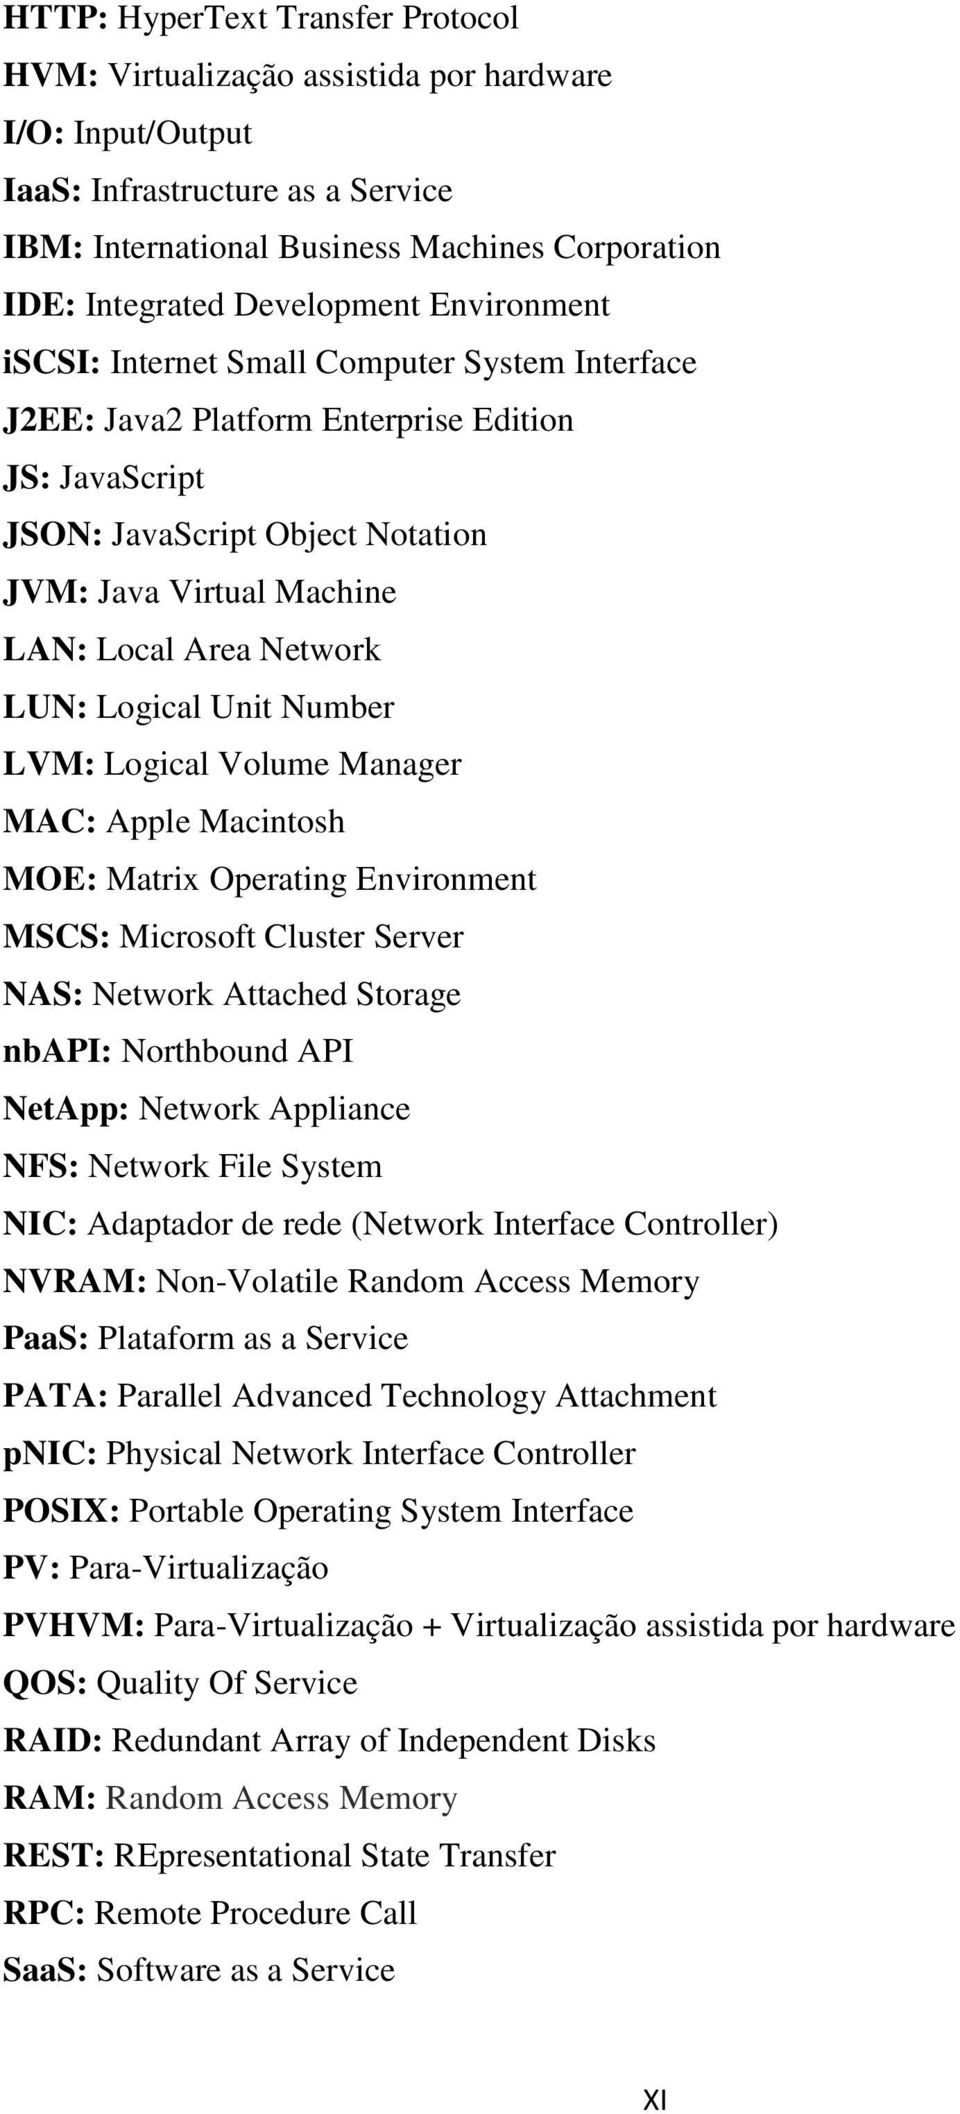 Area Network LUN: Logical Unit Number LVM: Logical Volume Manager MAC: Apple Macintosh MOE: Matrix Operating Environment MSCS: Microsoft Cluster Server NAS: Network Attached Storage nbapi: Northbound